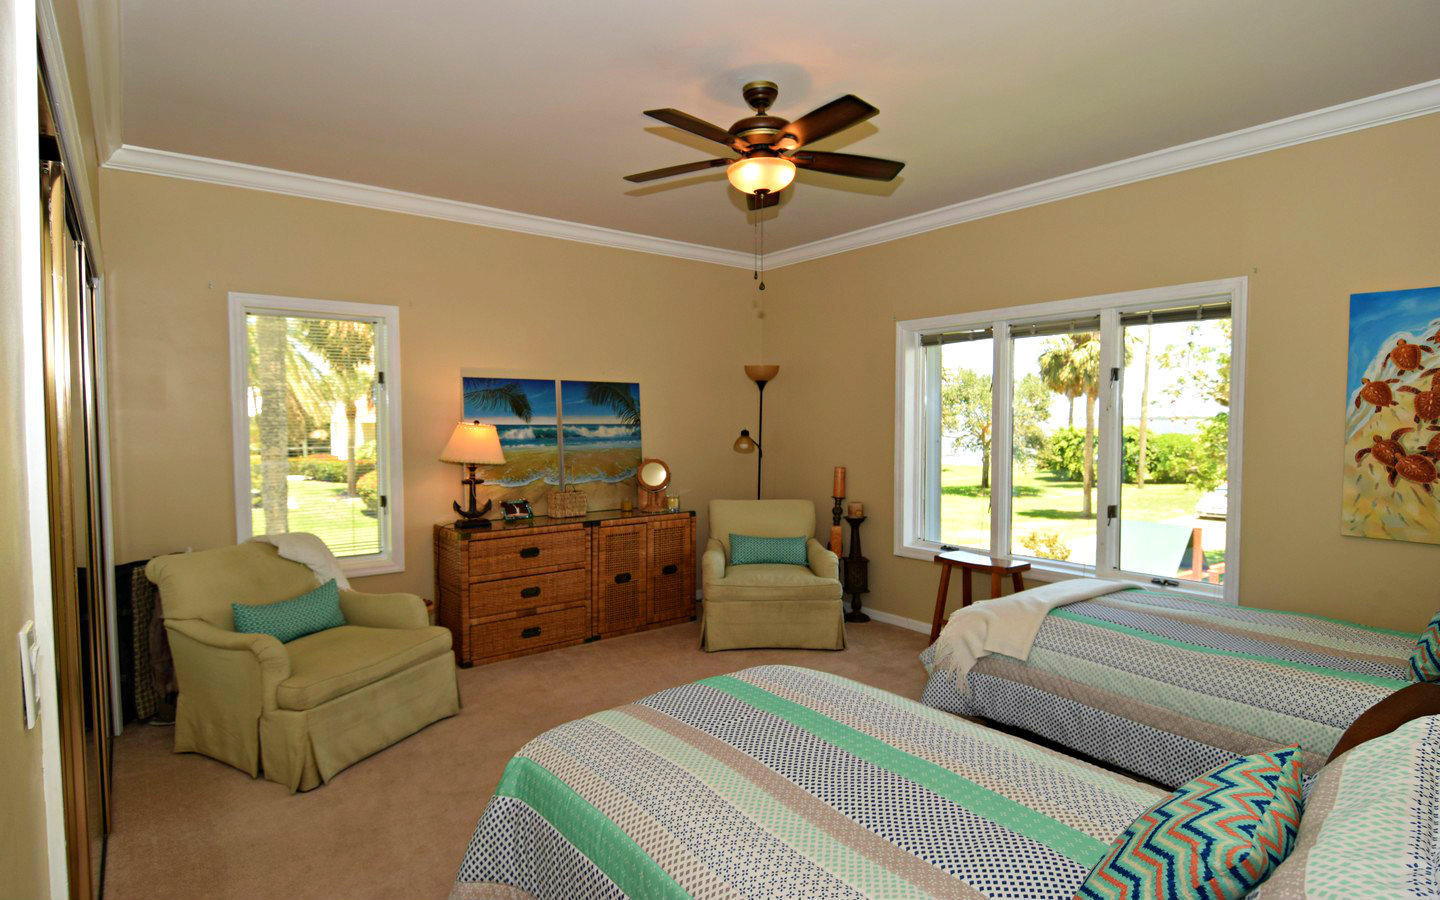 CAPTAIN'S COVE, LOT 1 OR 343/1328